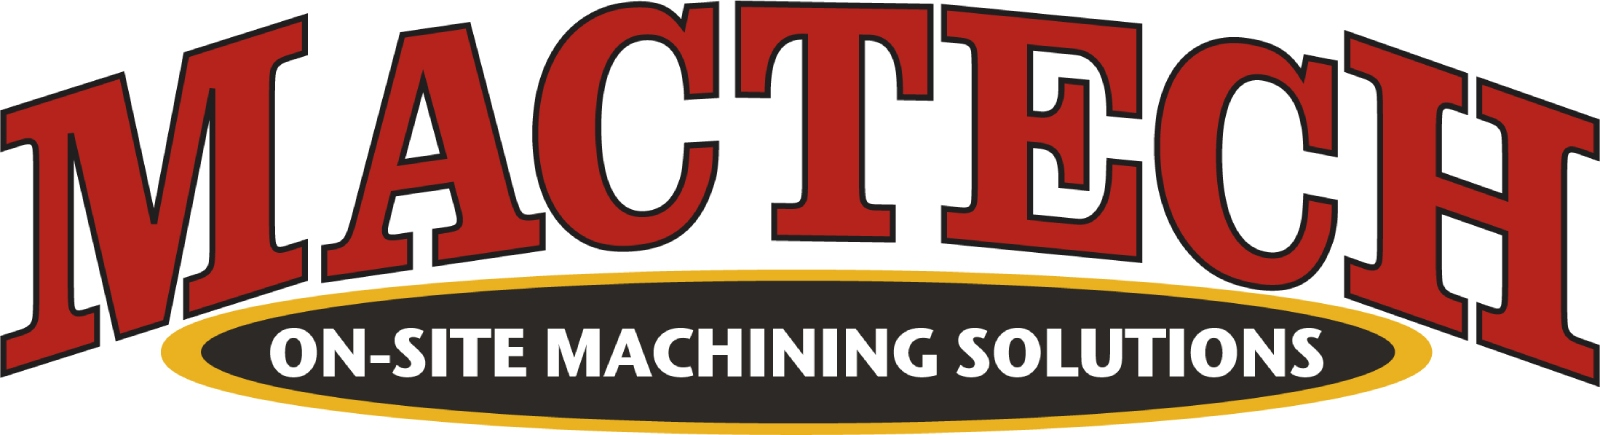 Mactech on-site solutions logo